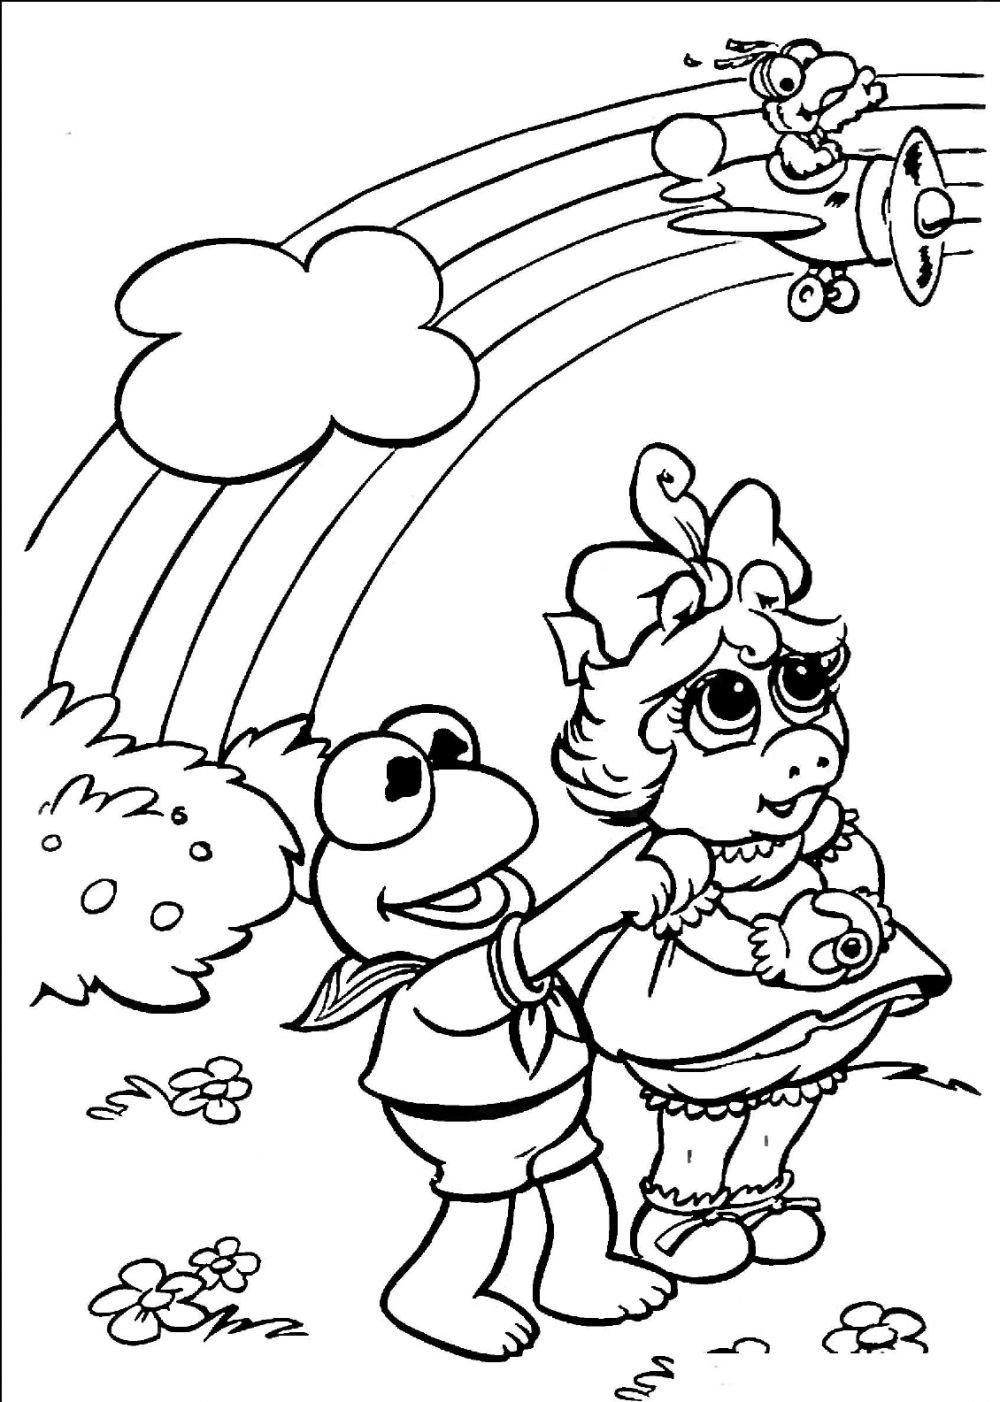 Coloring Book For Kids  Free Printable Rainbow Coloring Pages For Kids